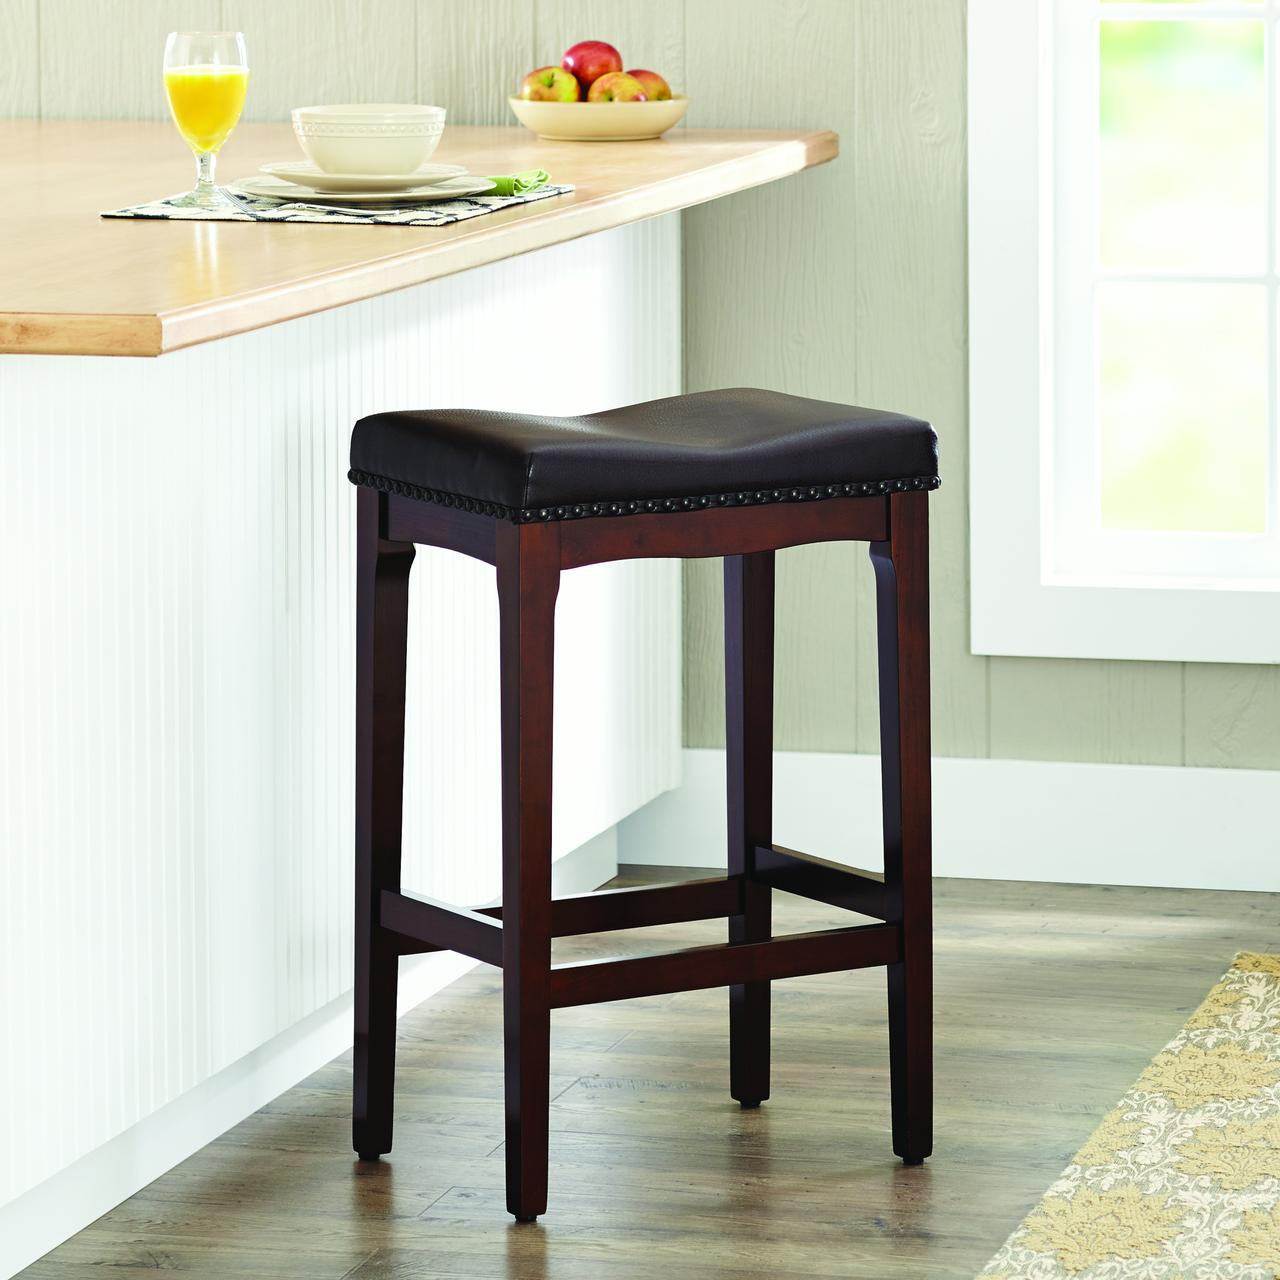 Better Homes and Gardens 29  Padded Saddle Stool Cherry & Better Homes and Gardens 29